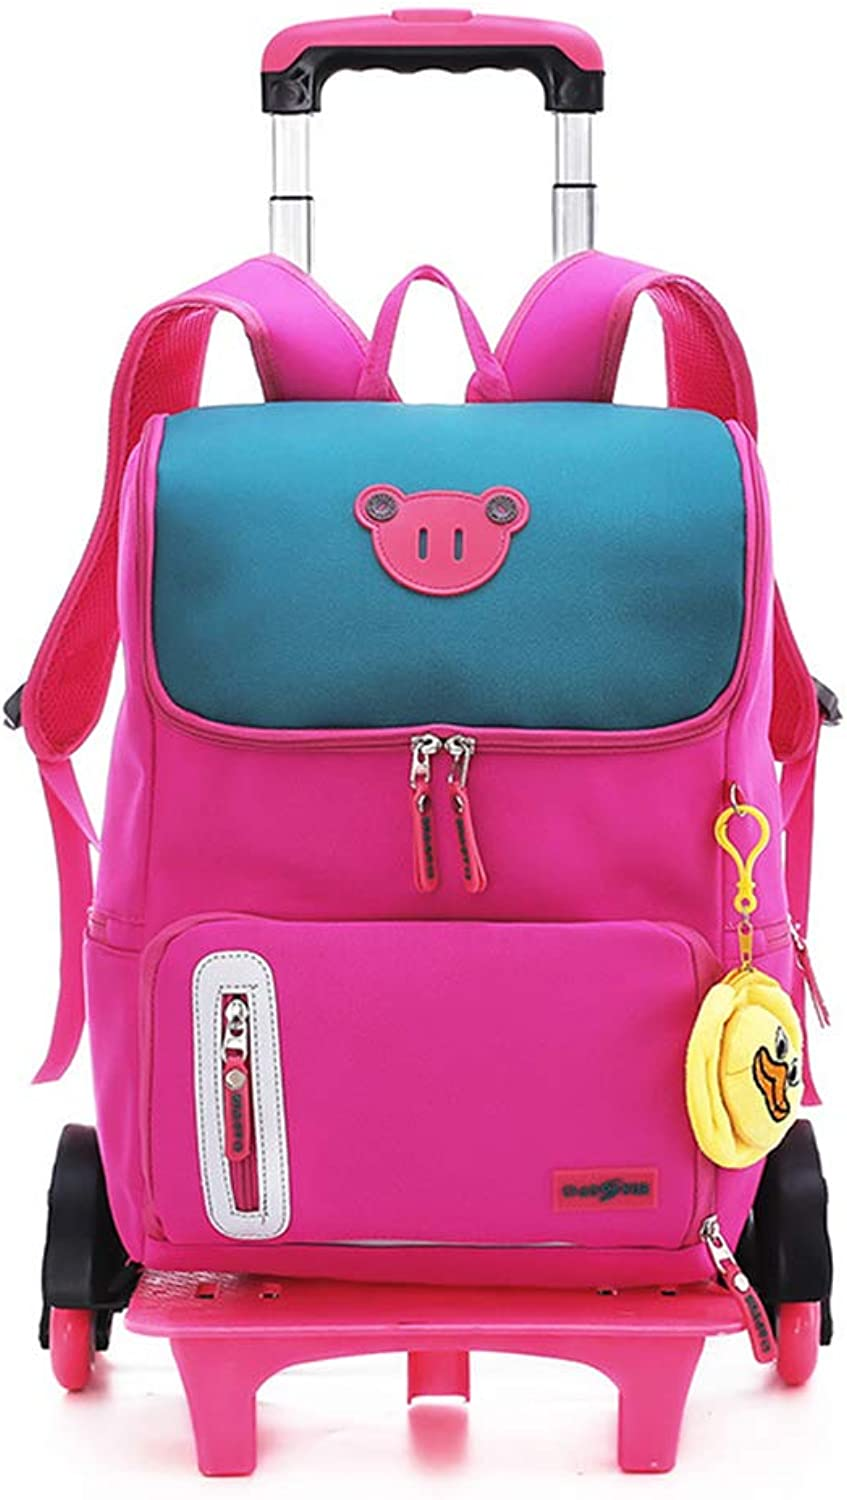 3e4dc631d12d LYZL Trolley bag Primary school and girl 24 grade sixwheeled ...